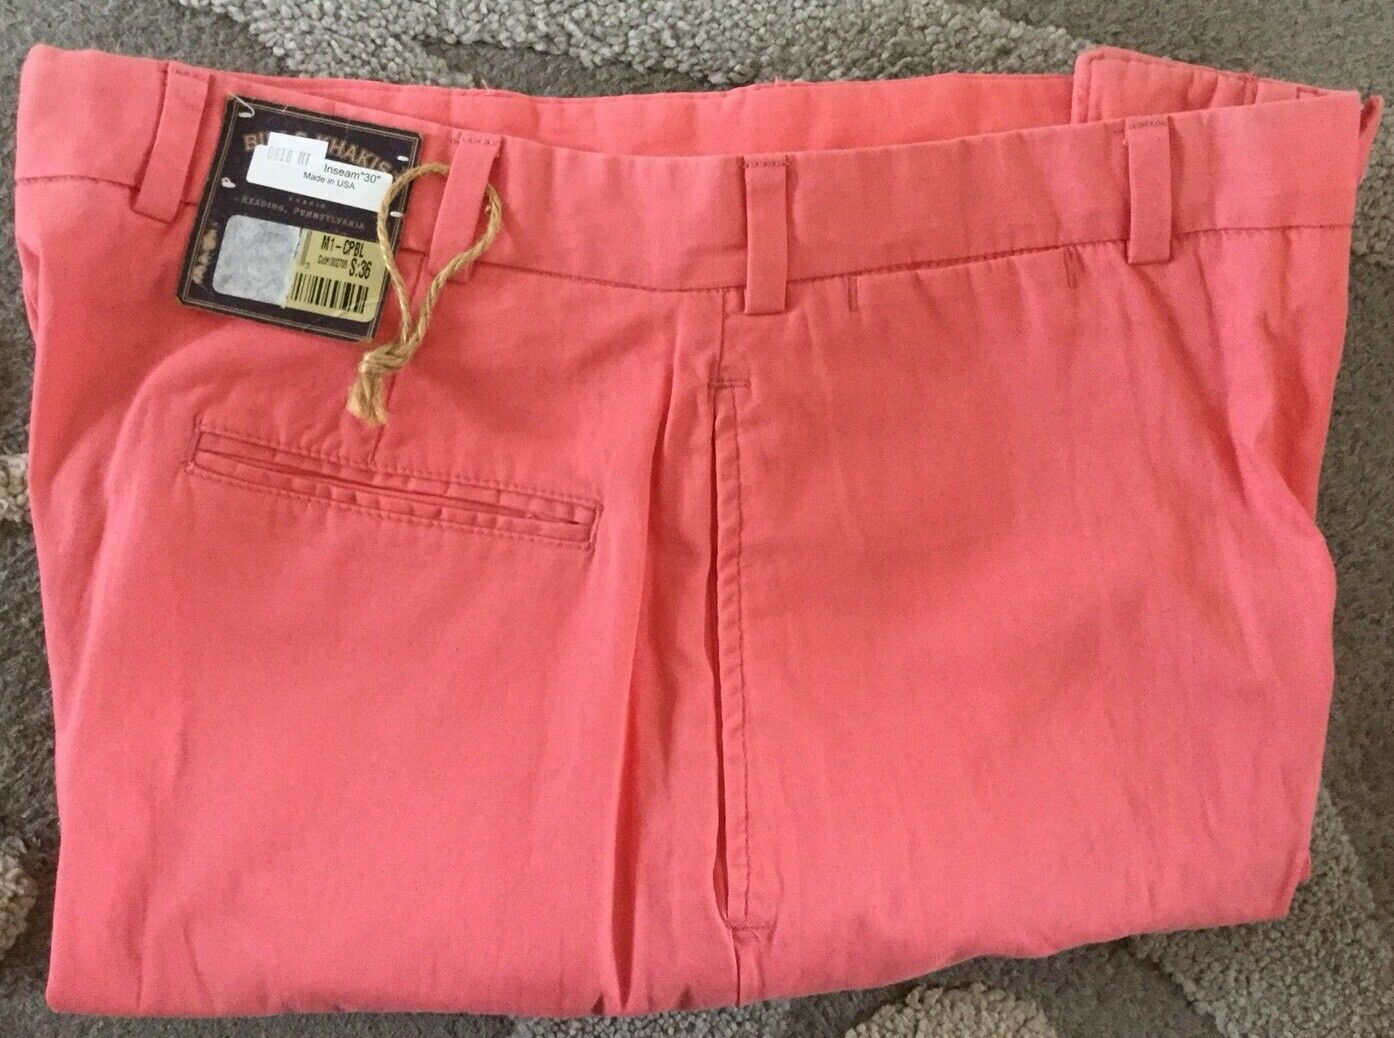 BRAND NEW-Bills khakis M1-CPBL Size 36X30 PLAIN RELAXED FIT POPLIN Coral